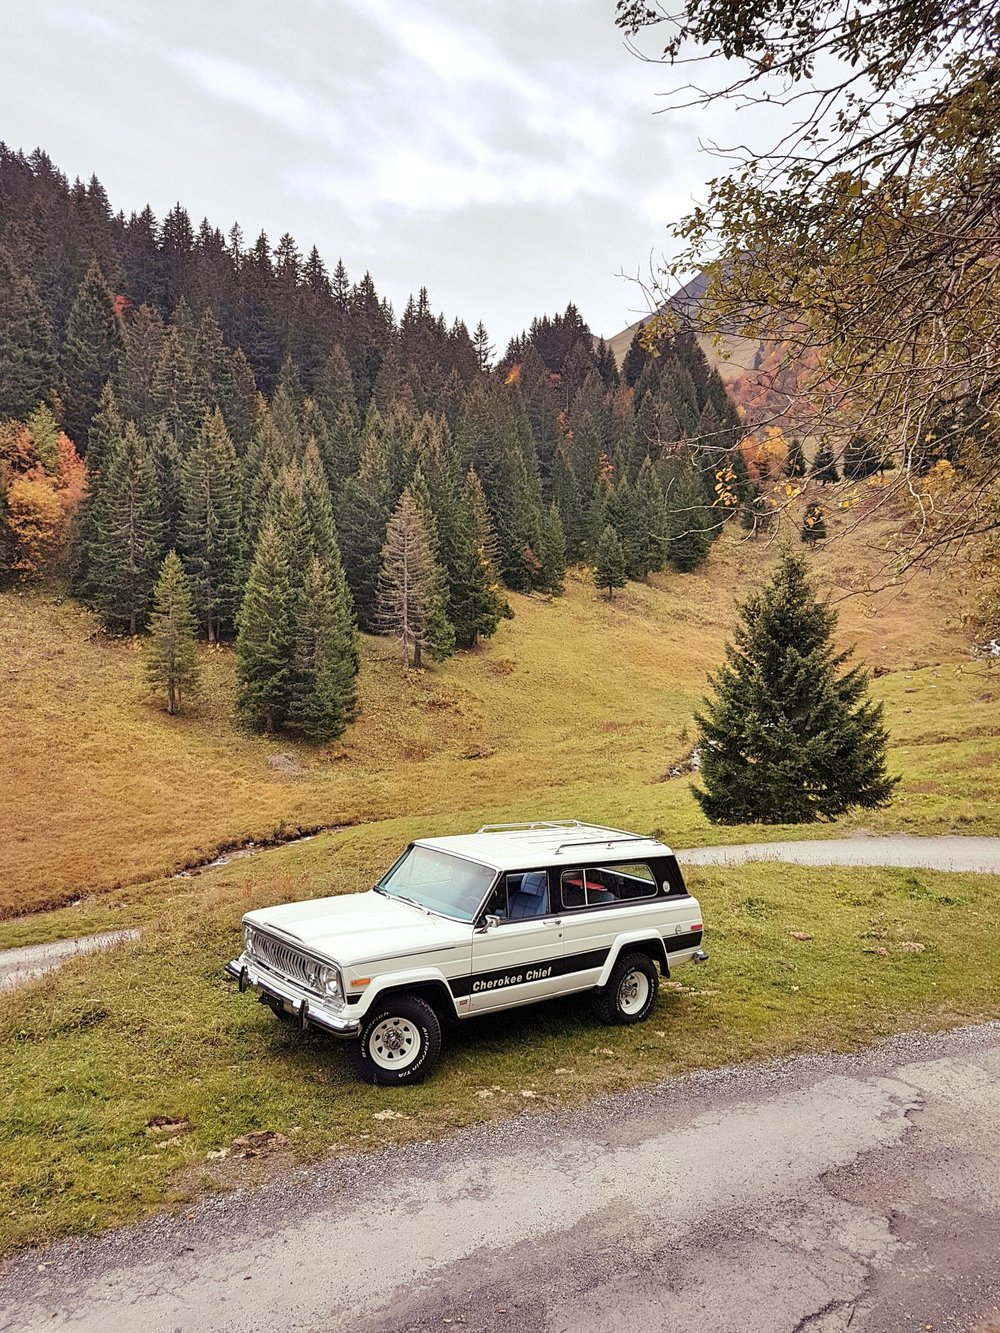 jeep-cherokee-chief-1978-shooting-morgins-switzerland-27.jpg